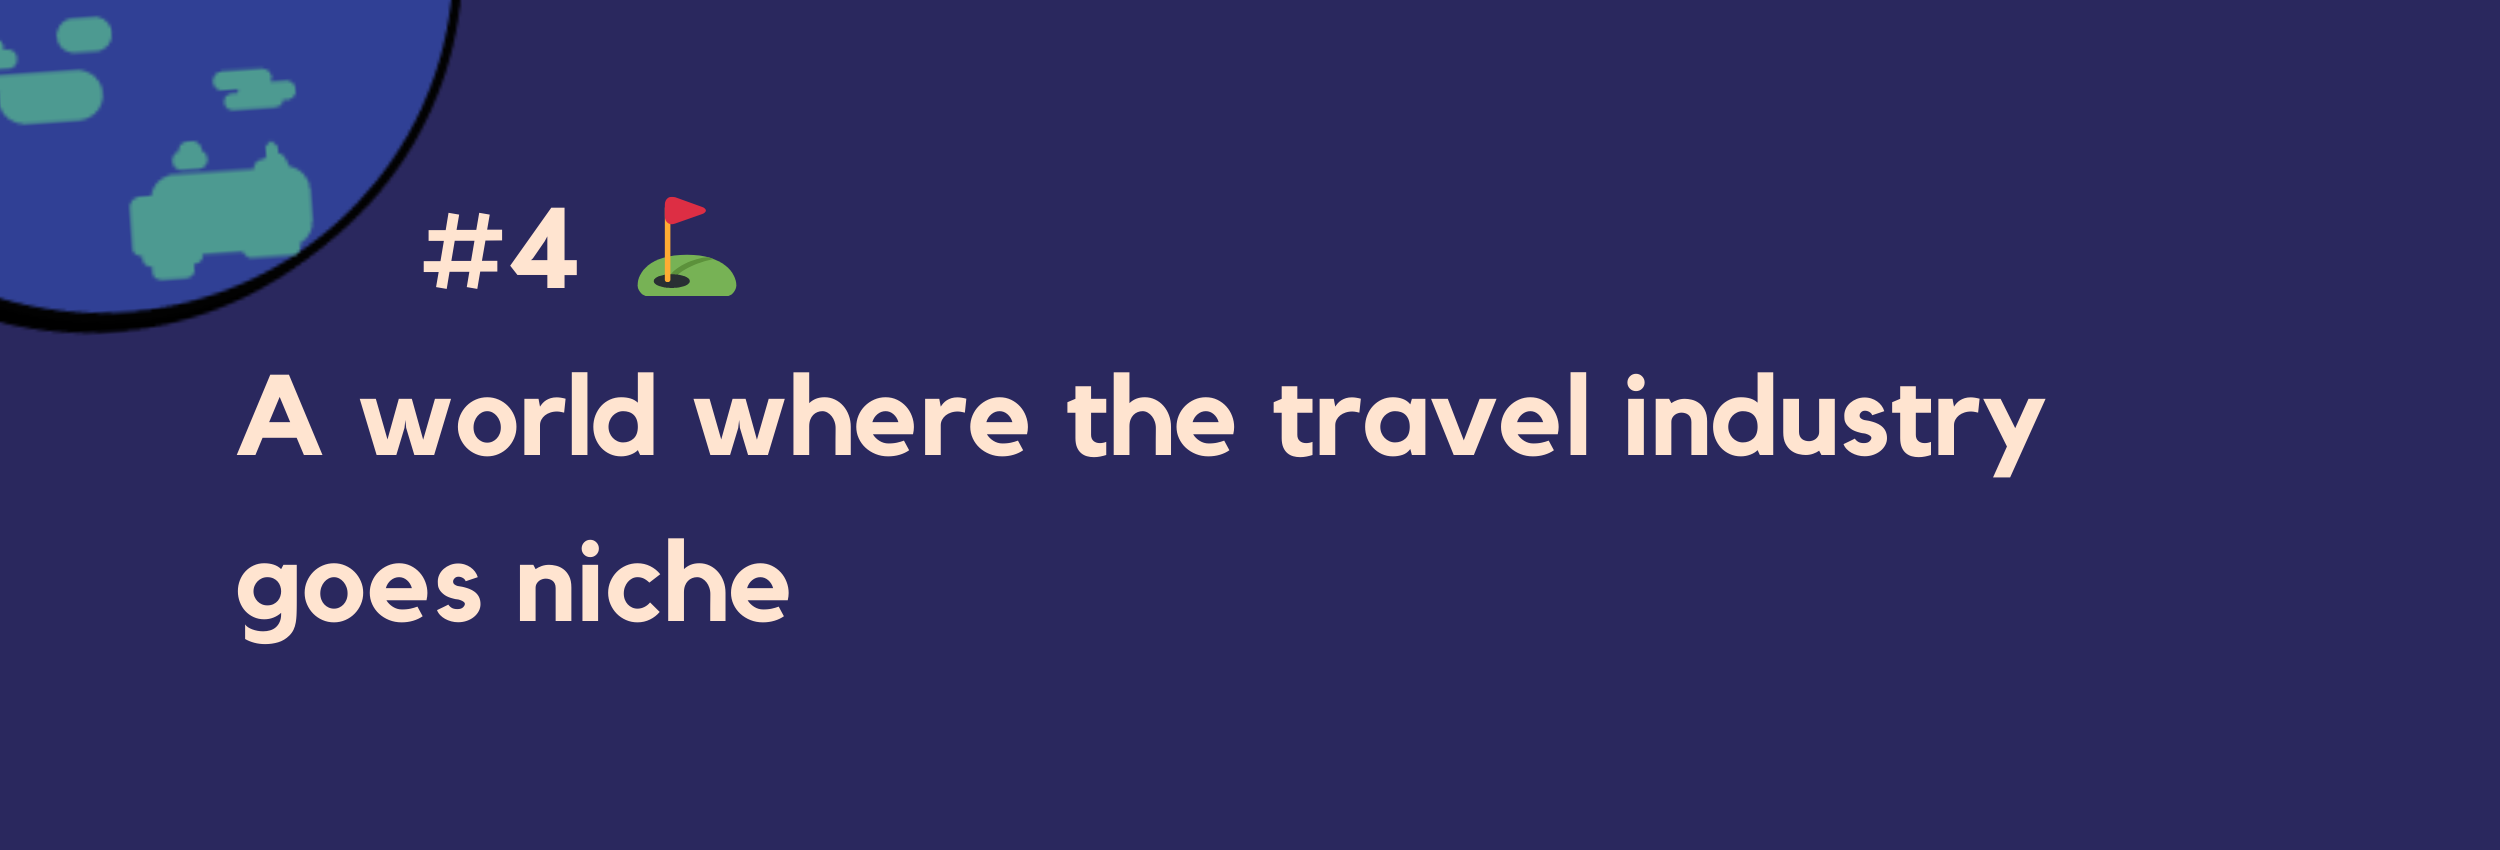 #4 — A world where the travel industry goes niche